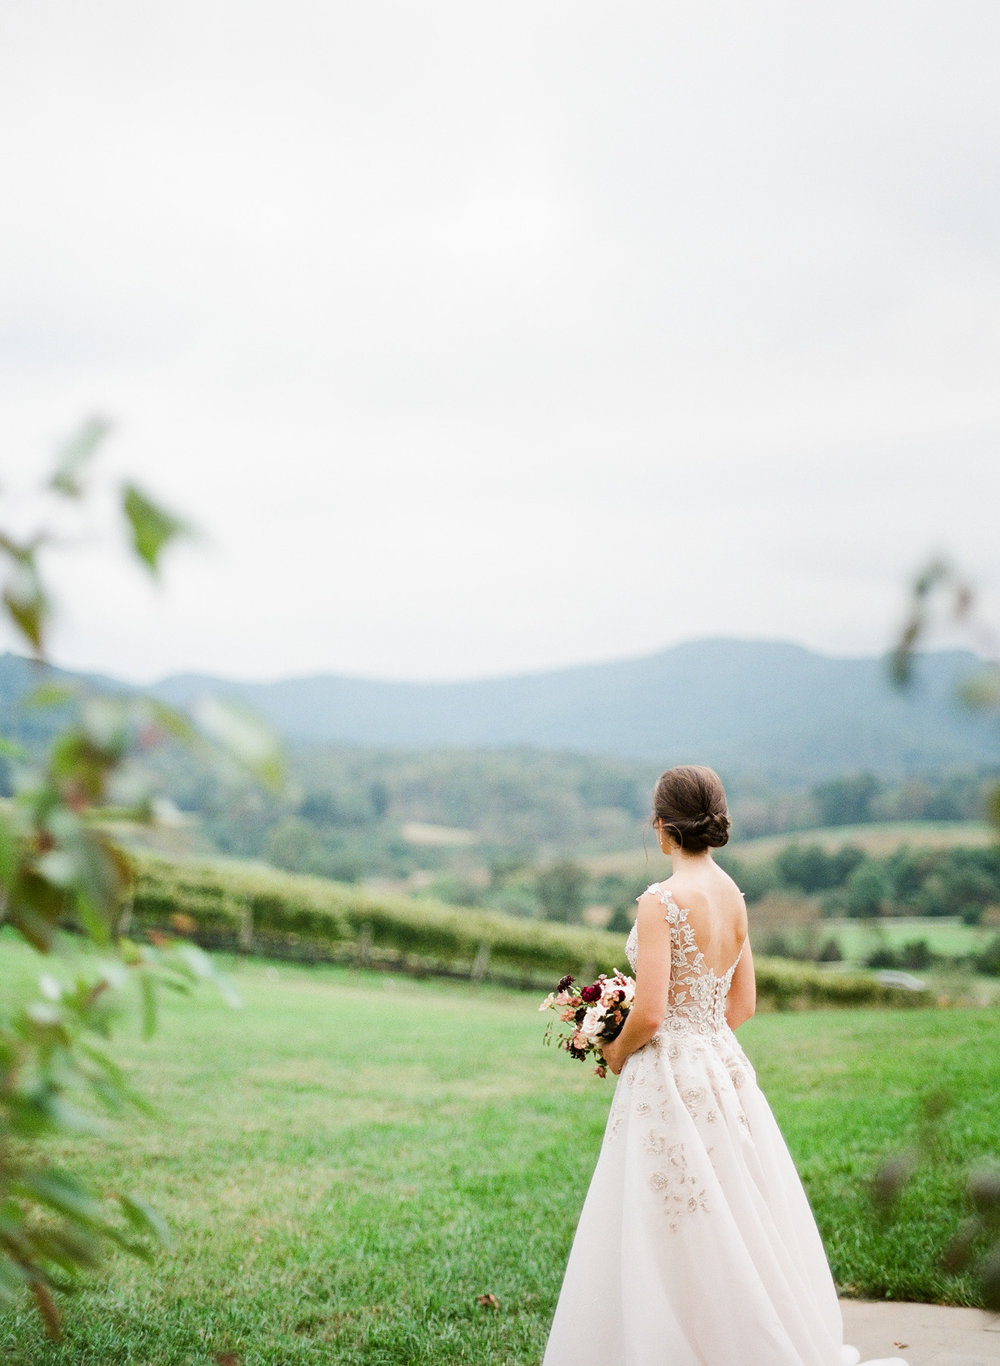 Pippin-Hill-Farm-and-Vinyards-Wedding-Film-Photography-09.jpg